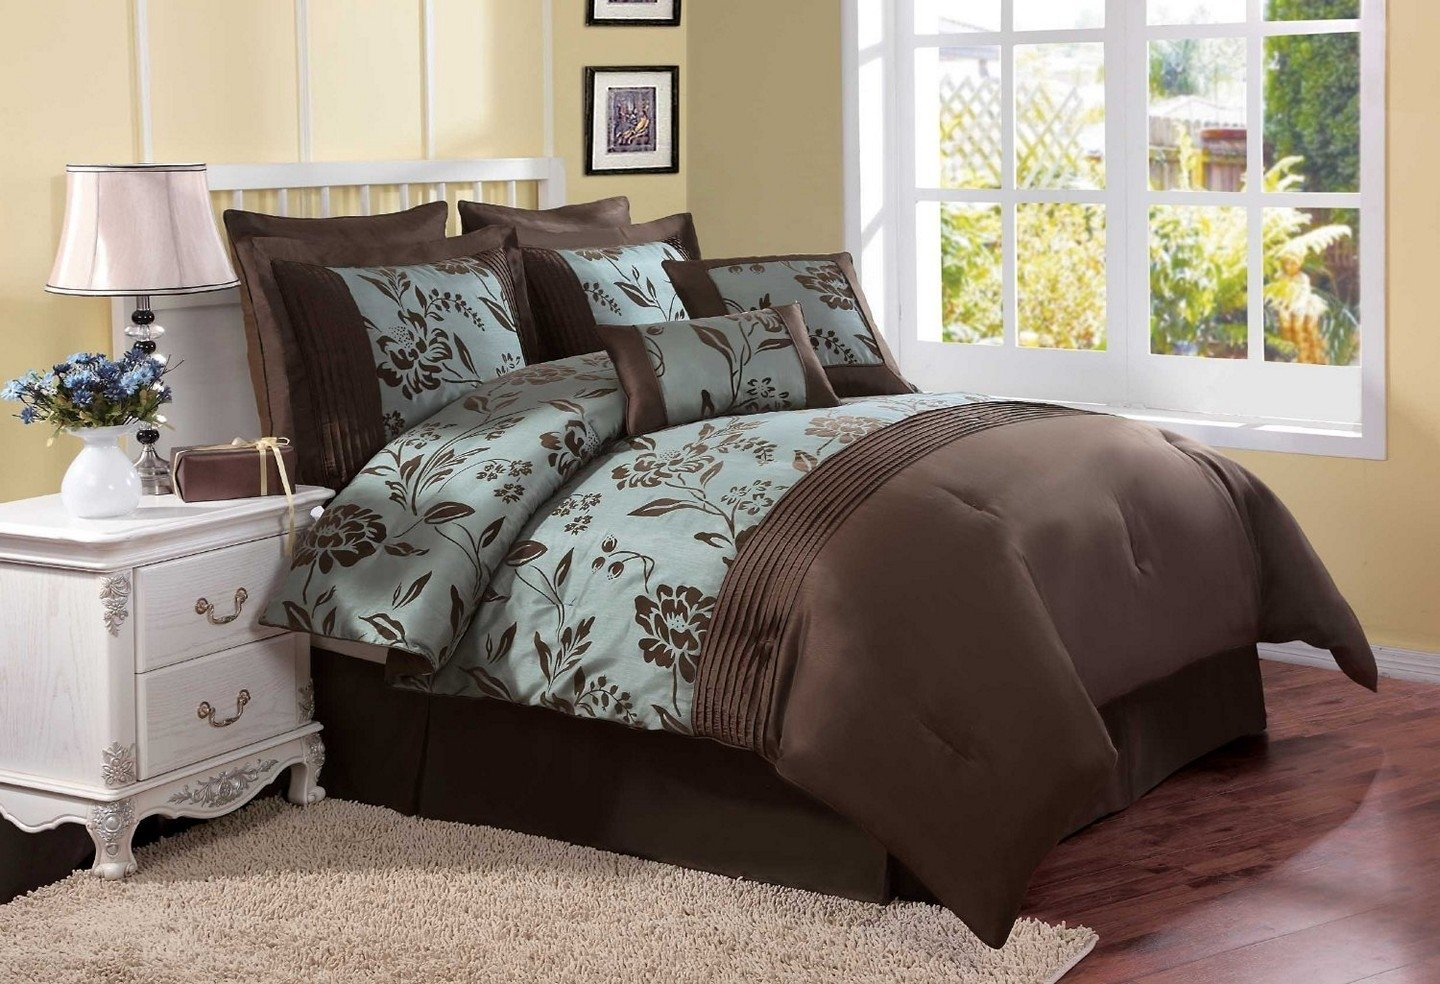 10 Most Popular Teal And Brown Bedroom Ideas excellent bedroom ideas teal and brown in teal bedroom ideas on 2021